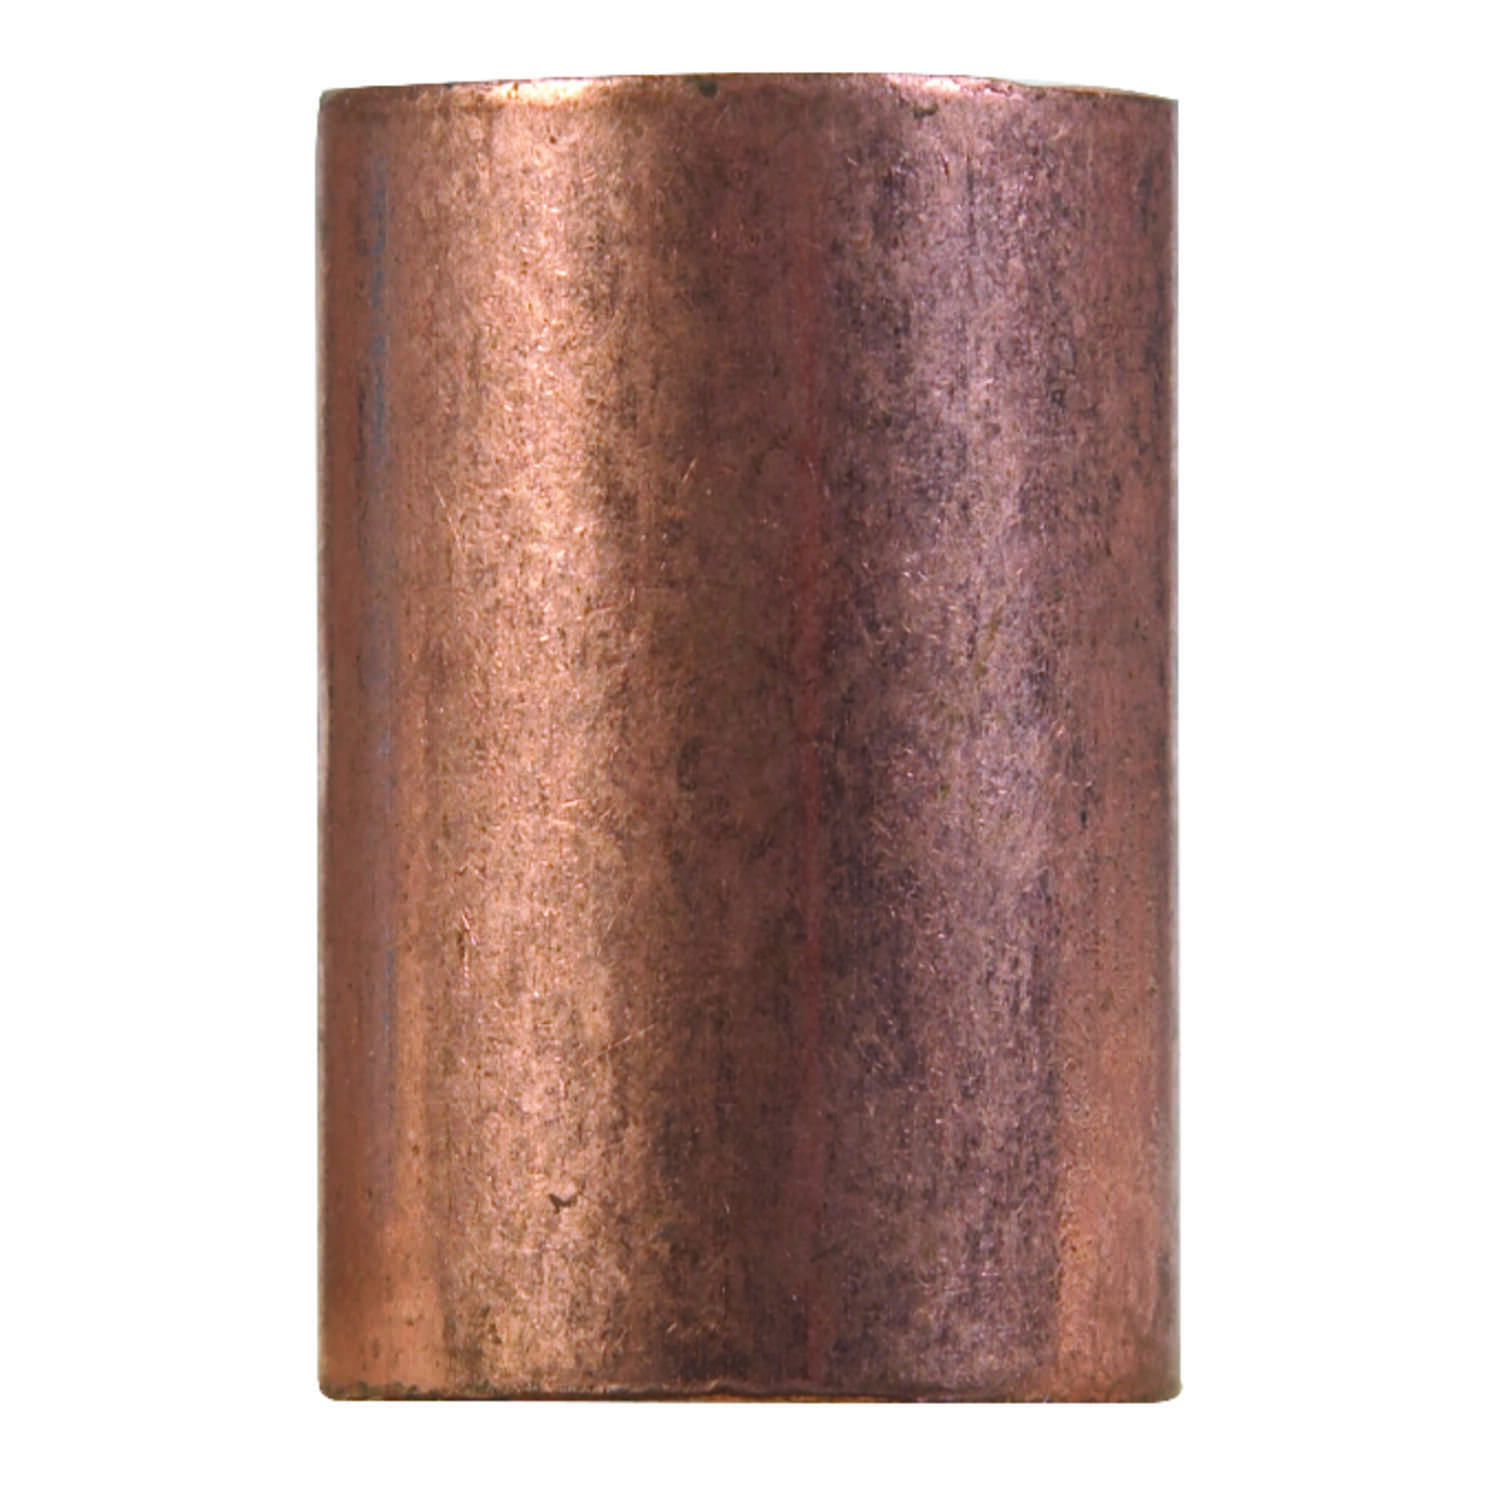 Elkhart  5/8 in. Sweat   x 5/8 in. Dia. Sweat  Copper  Coupling with Stop